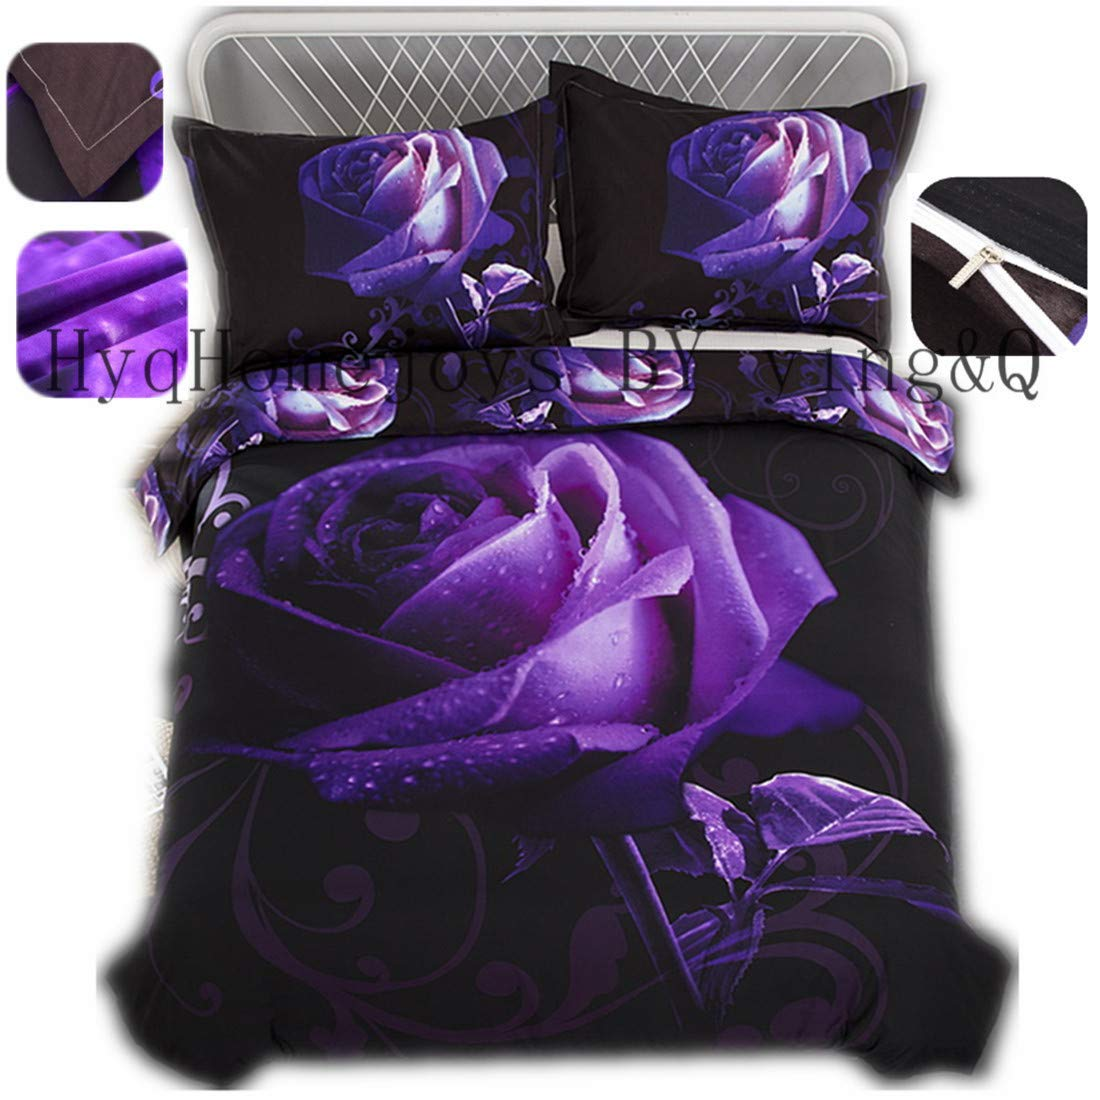 Cheap Twin Size Purple Bedding Find Twin Size Purple Bedding Deals On Line At Alibaba Com